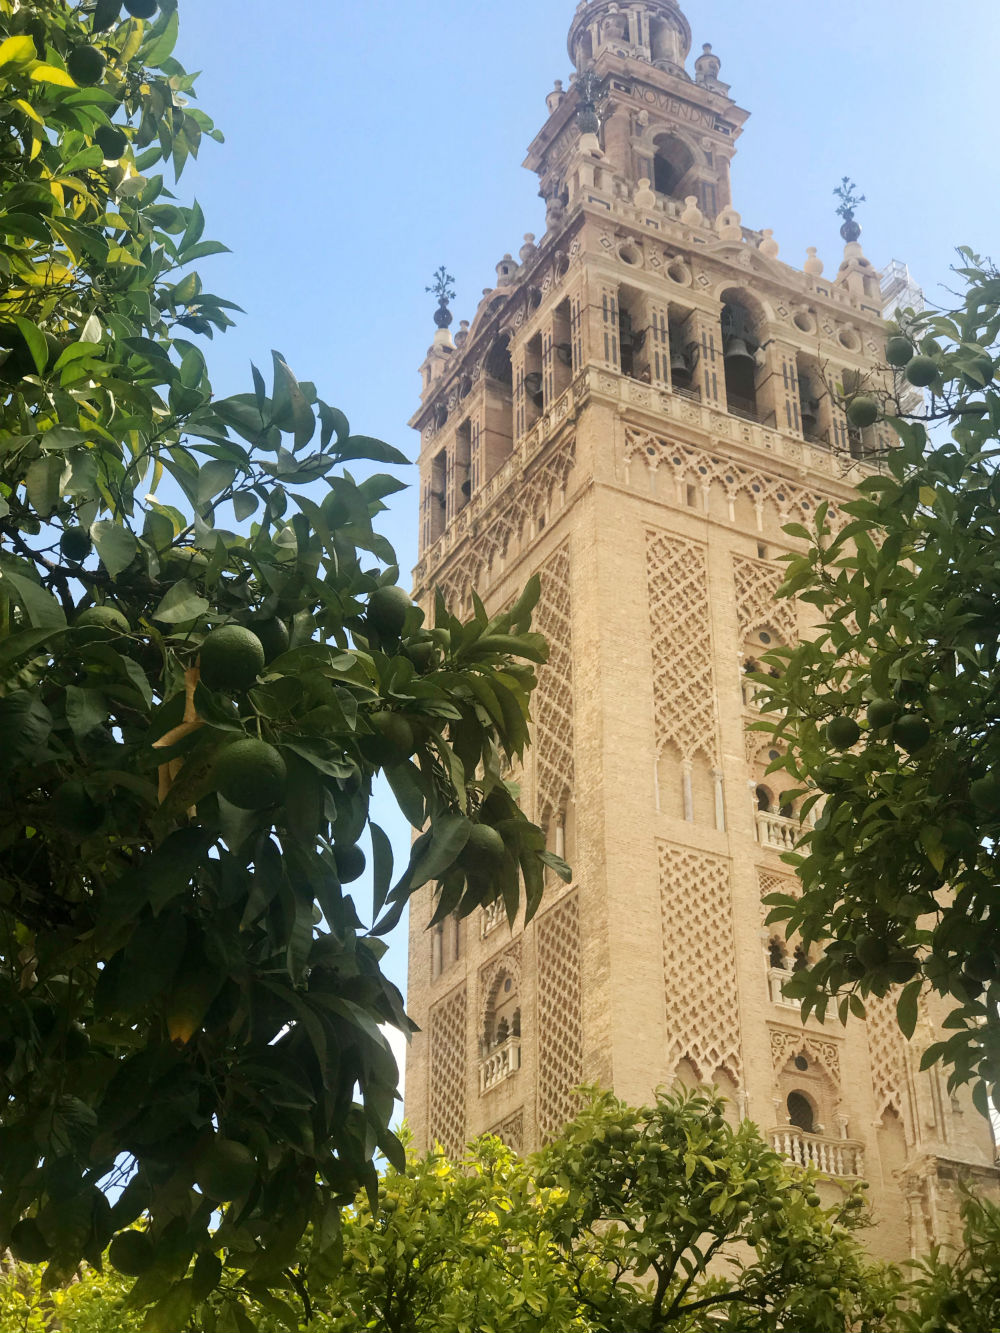 Seville's cathedral, Santa Maria de la Sede, is the largest Gothic cathedral in the world.